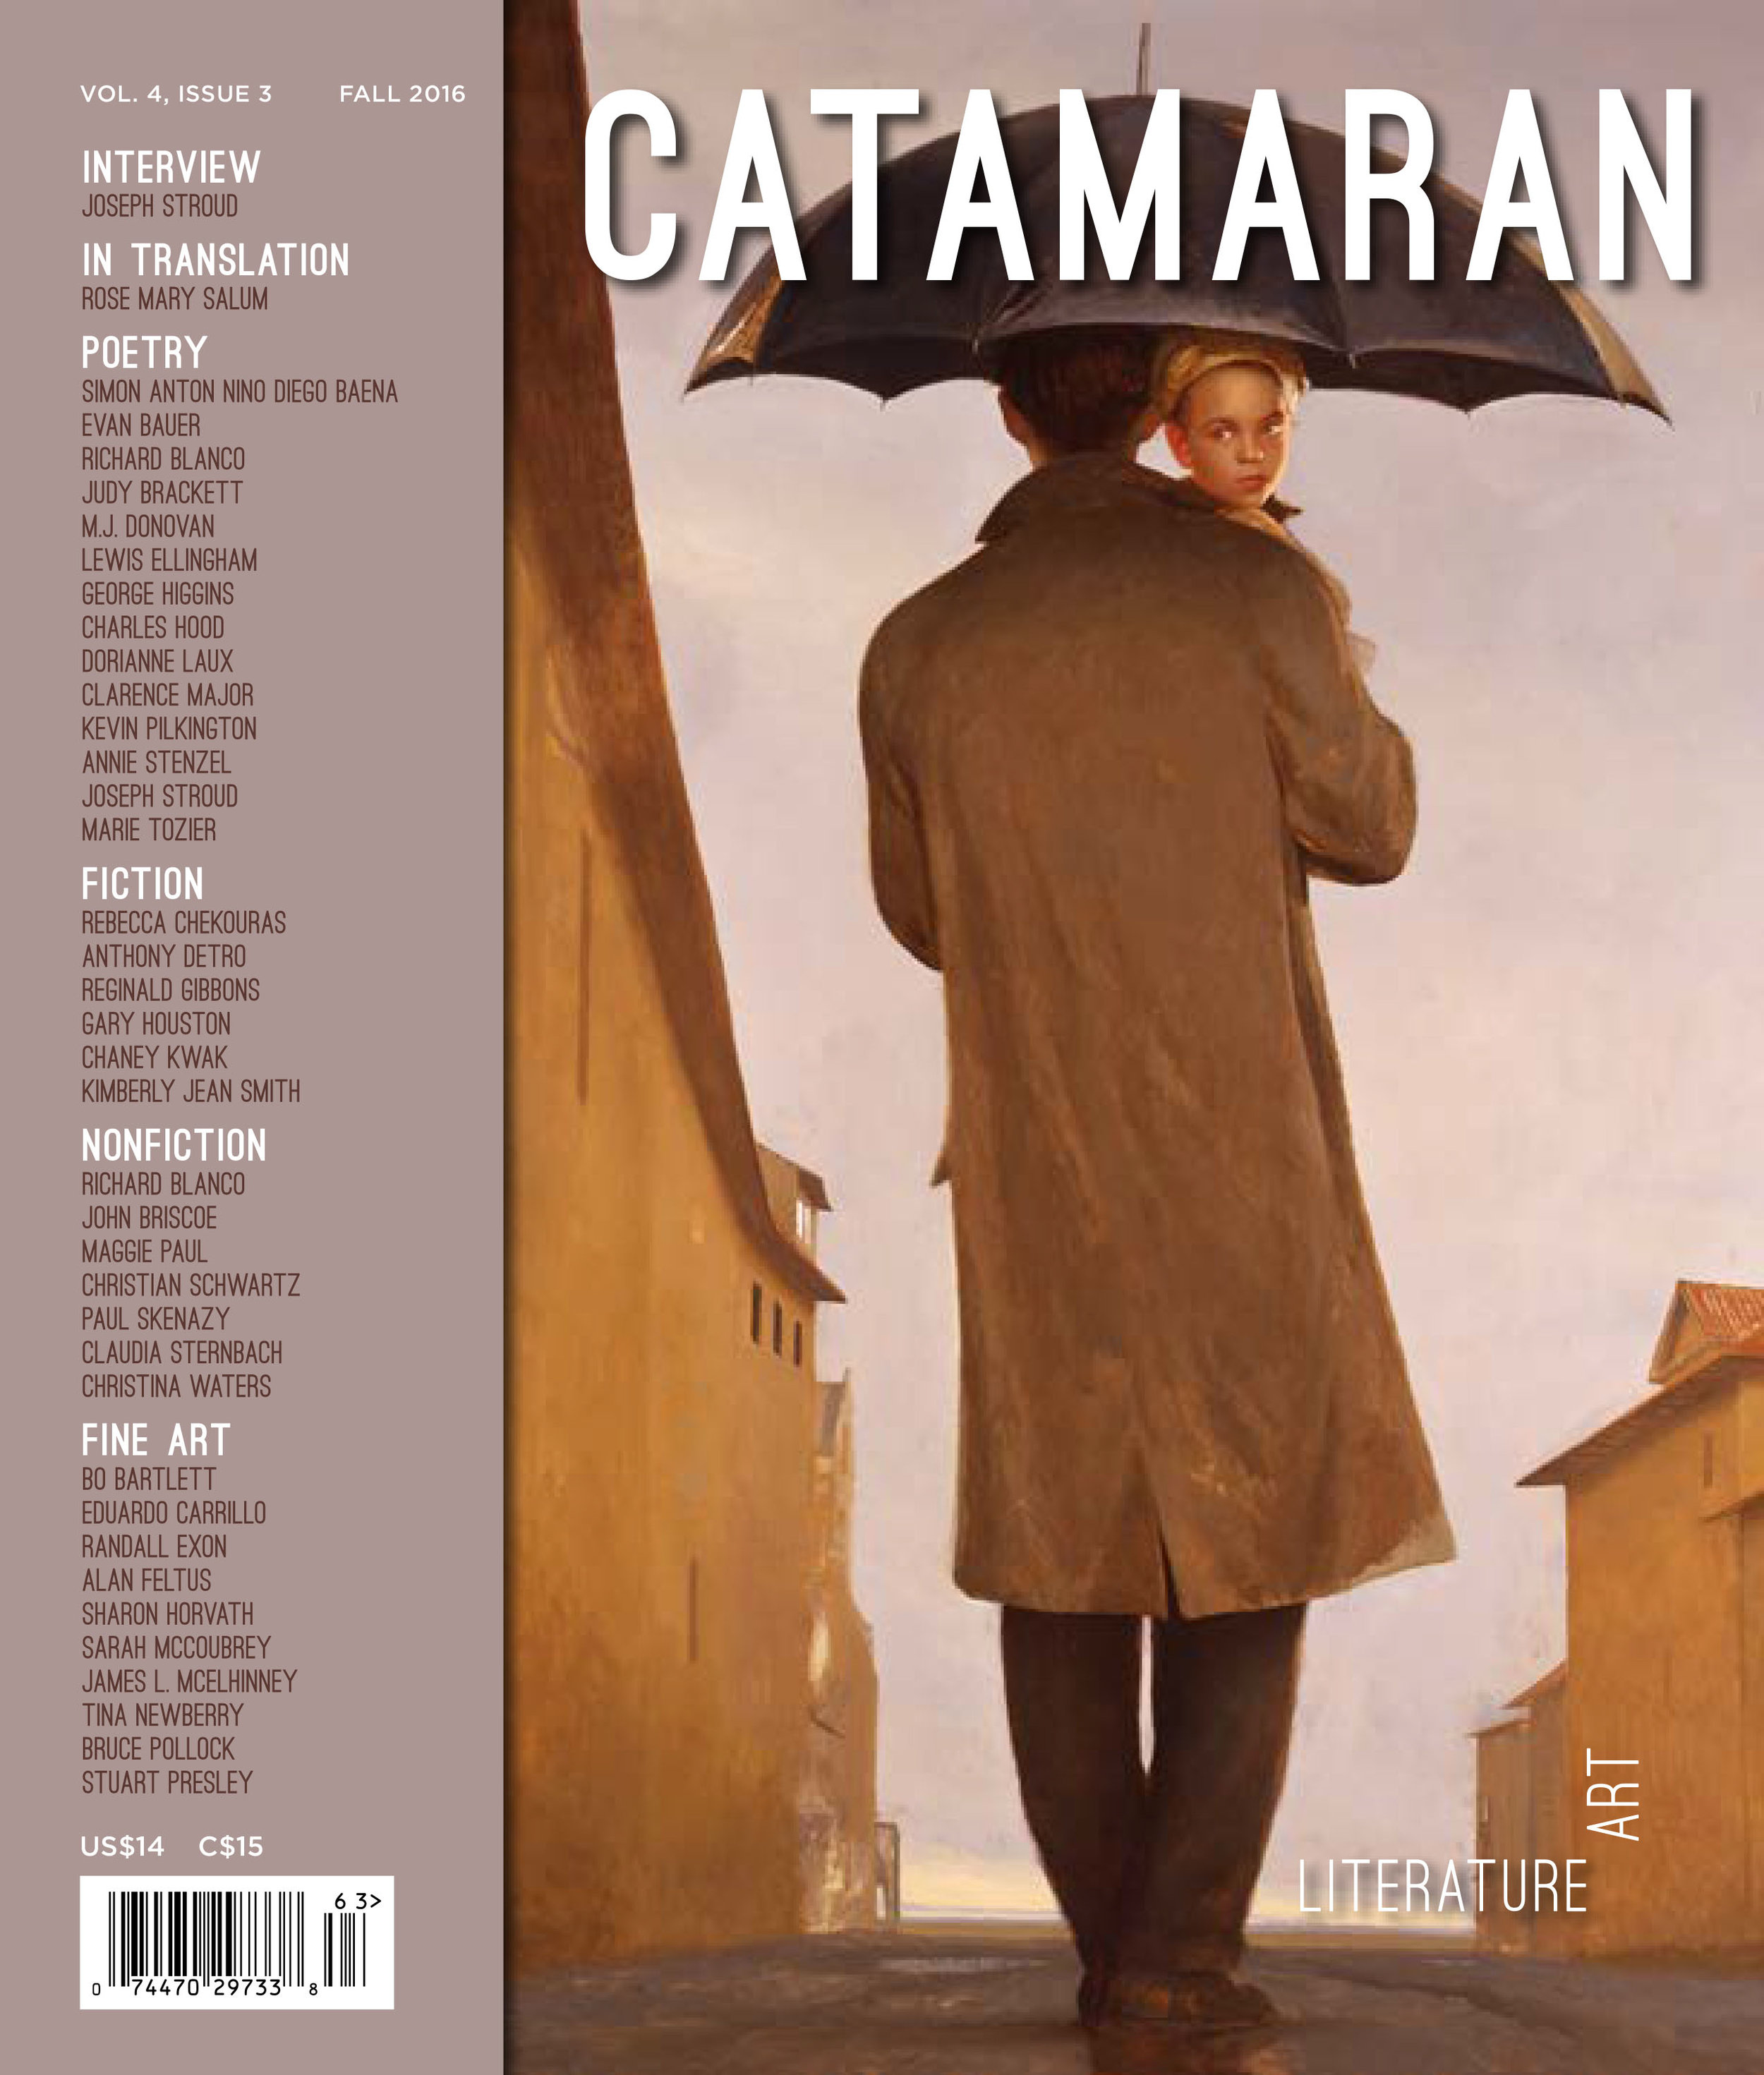 Catamaran, Vol 4, Issue 3.jpg